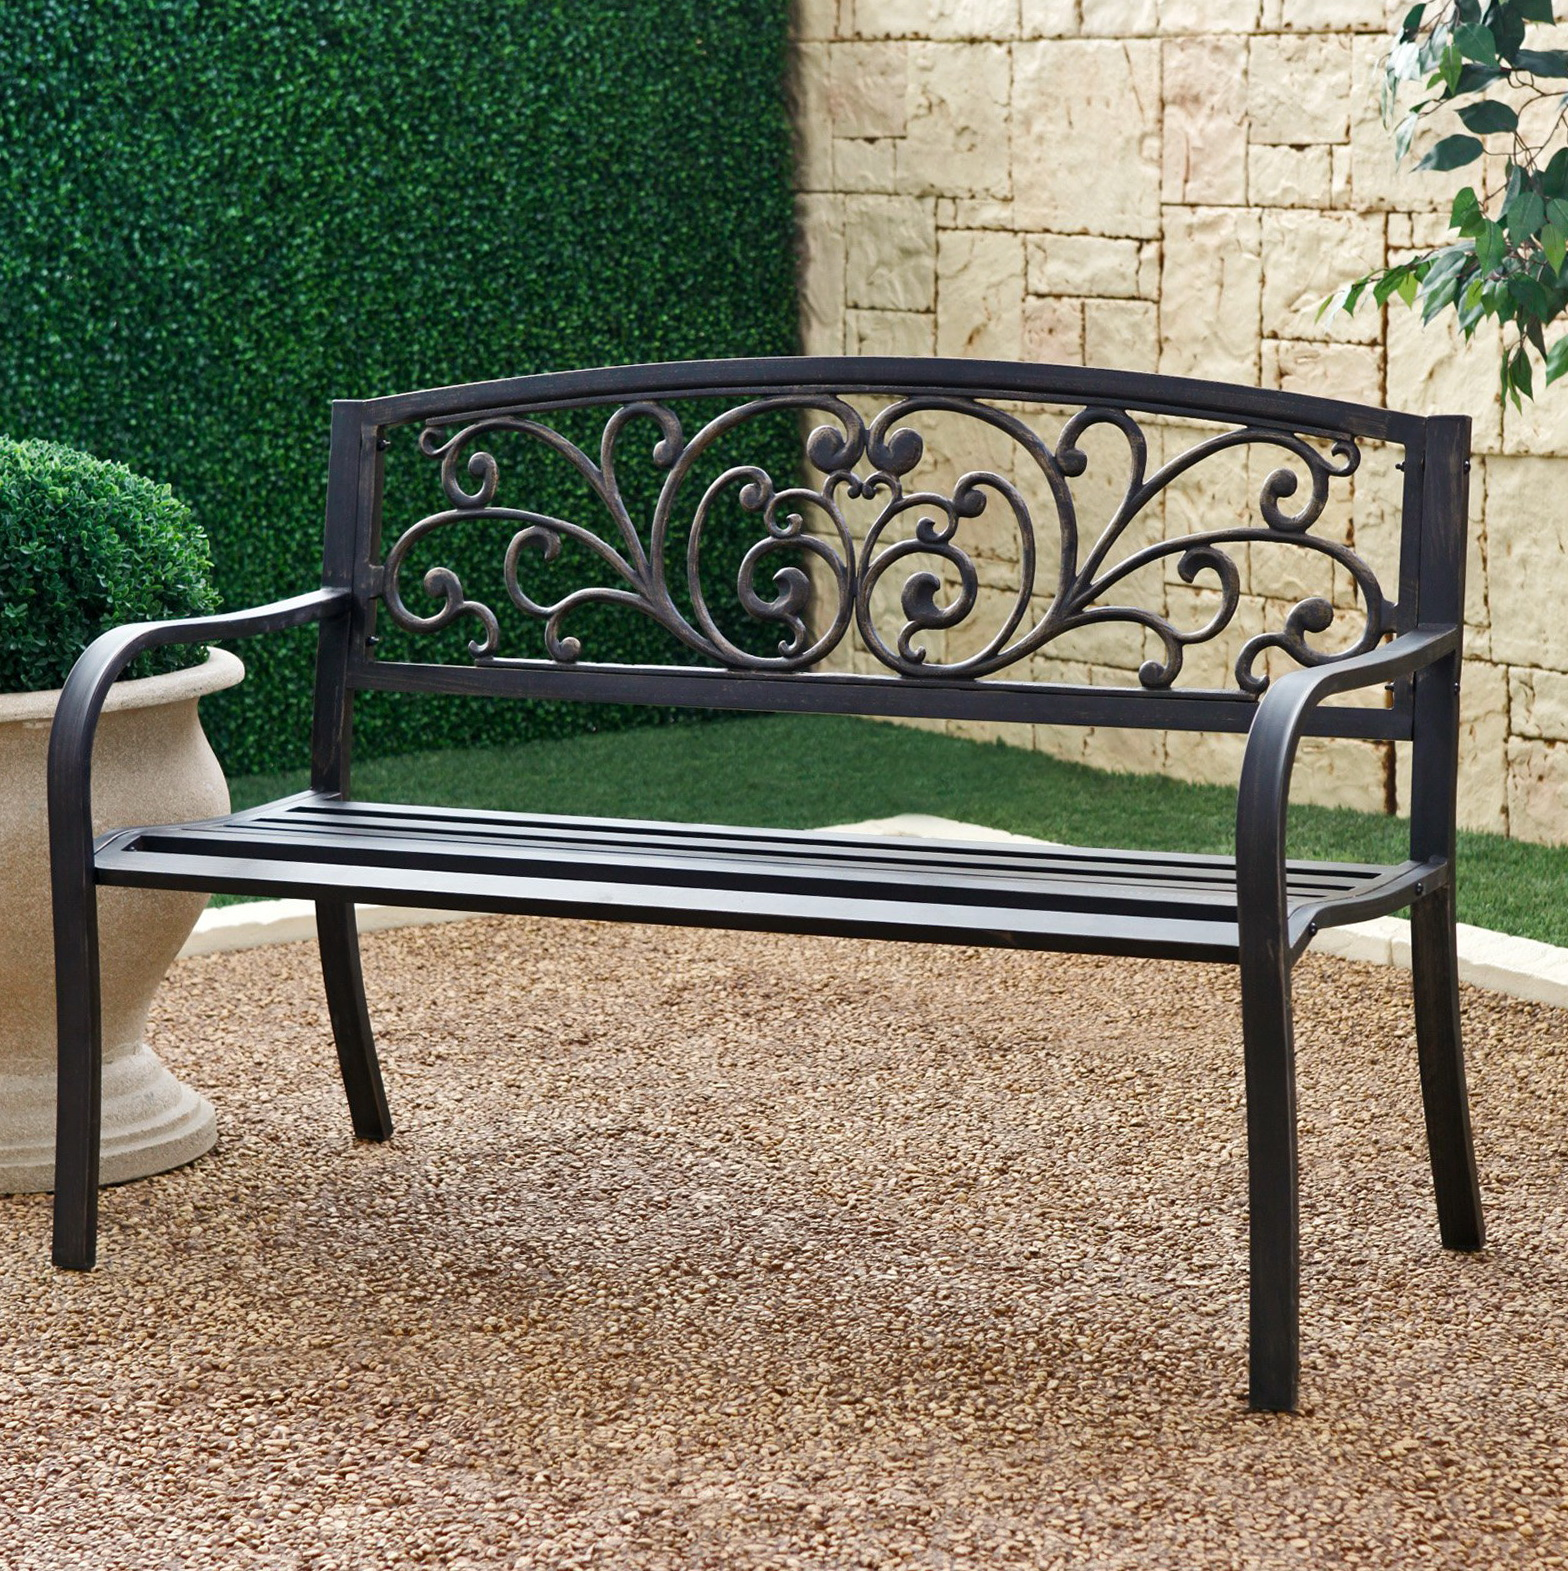 Black metal garden bench home design ideas Garden benches metal